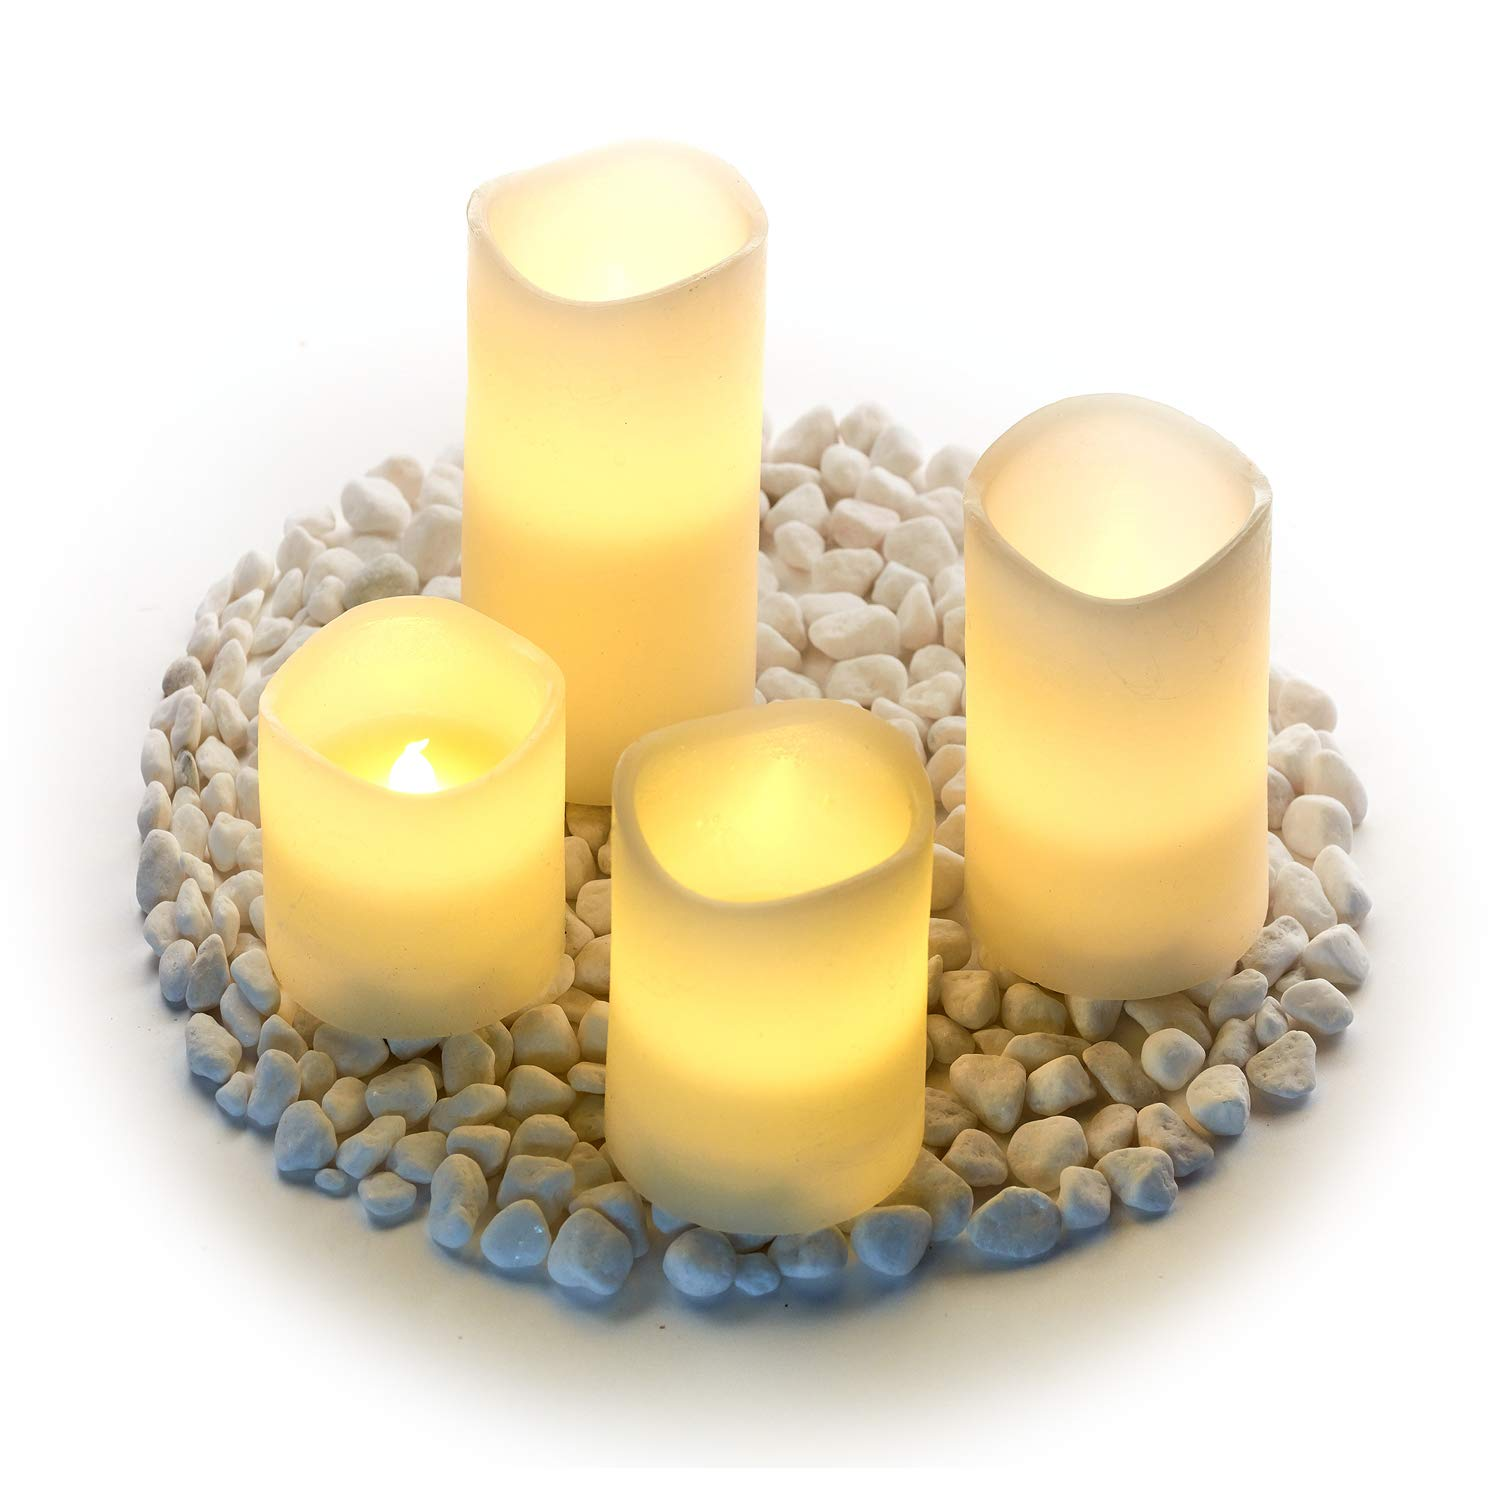 Hayley Cherie Textured Real Wax Flameless Candles with Timer Set of 4 LED Candles 3 4 5 6 inches Tall Flickering Amber Flame Battery Operated Pillar Candles – Large Unscented